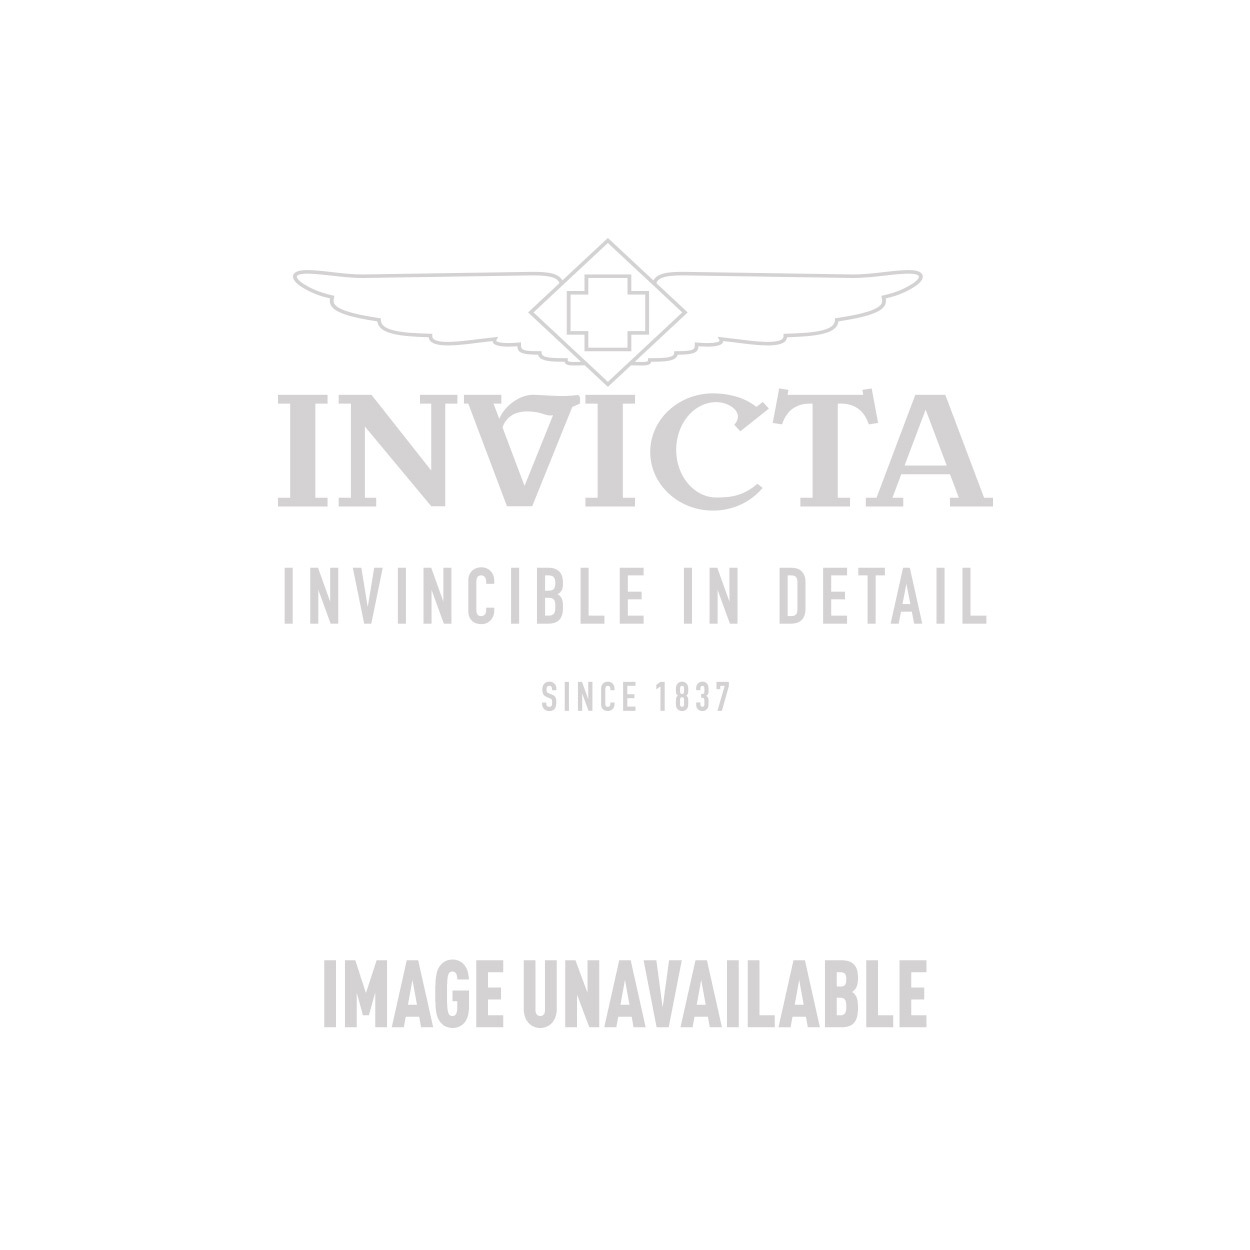 Invicta Coalition Forces Swiss Made Quartz Watch - Stainless Steel case Stainless Steel band - Model 17639